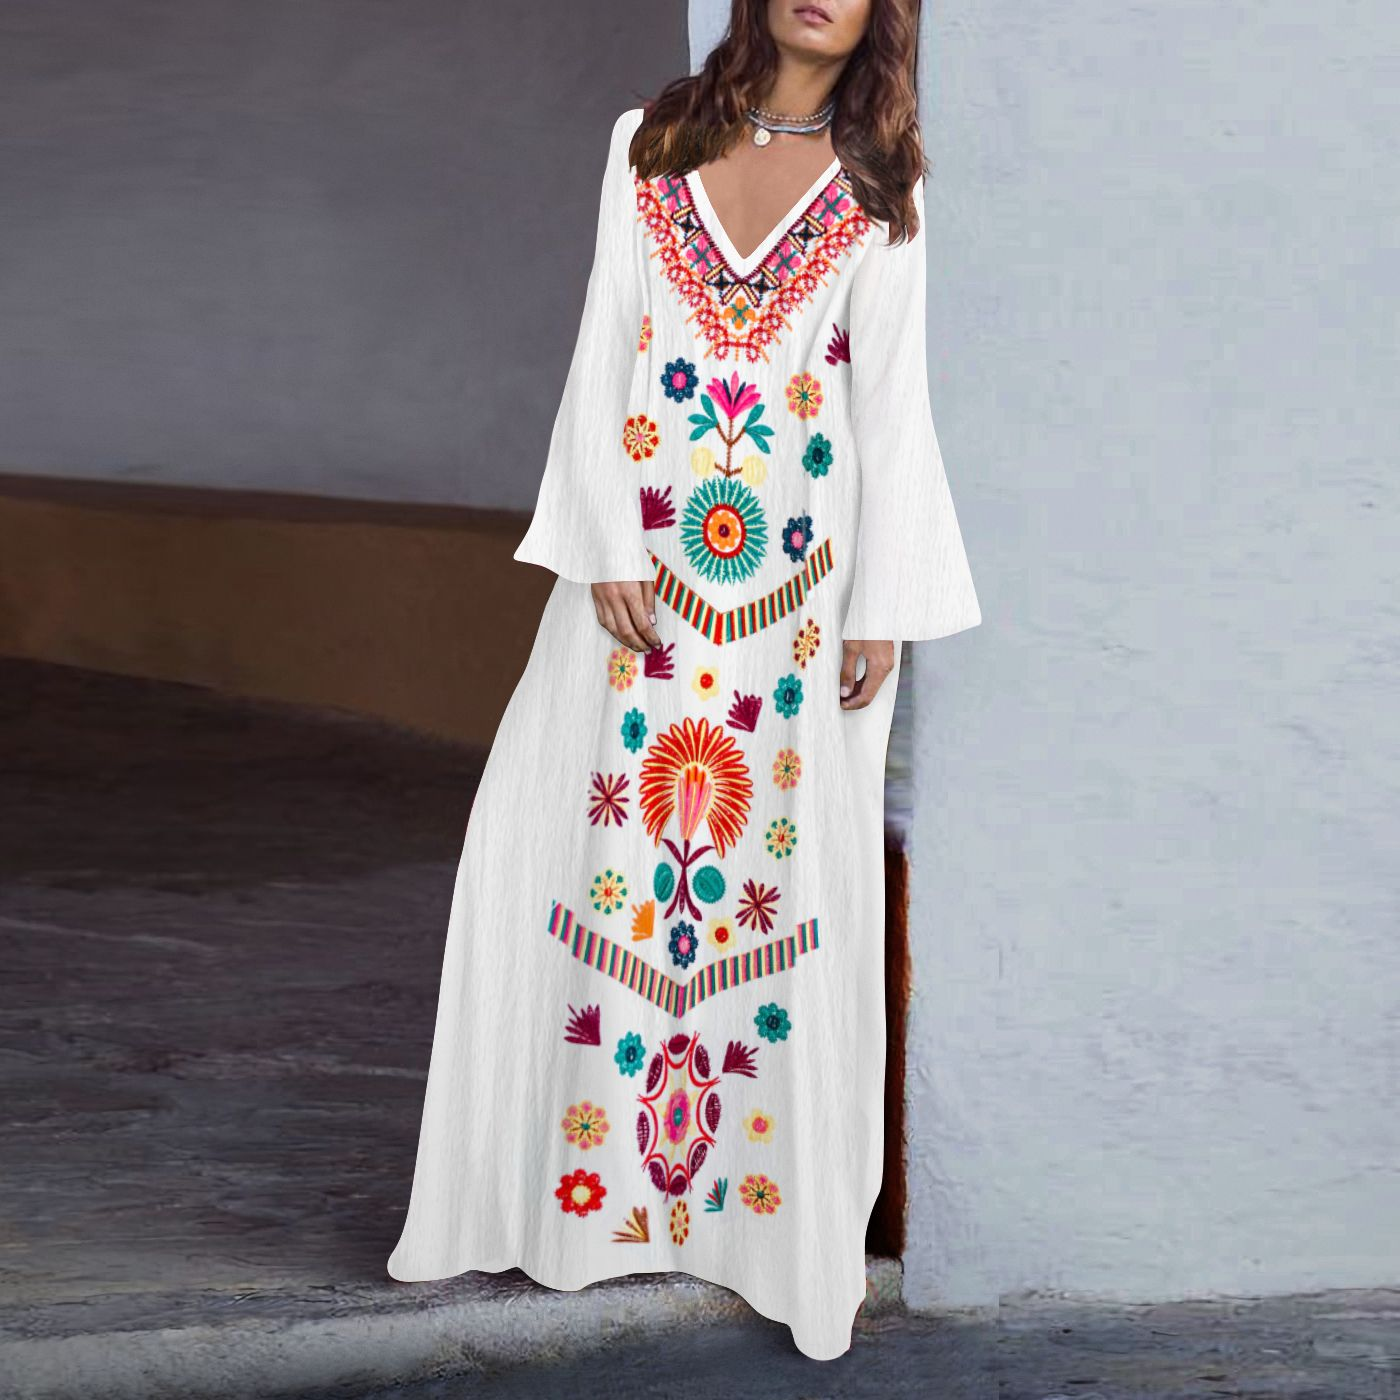 3adee4731a7 Cotton Linen V-Neck Printed Fringed Casual Maxi Dress in 2019 ...